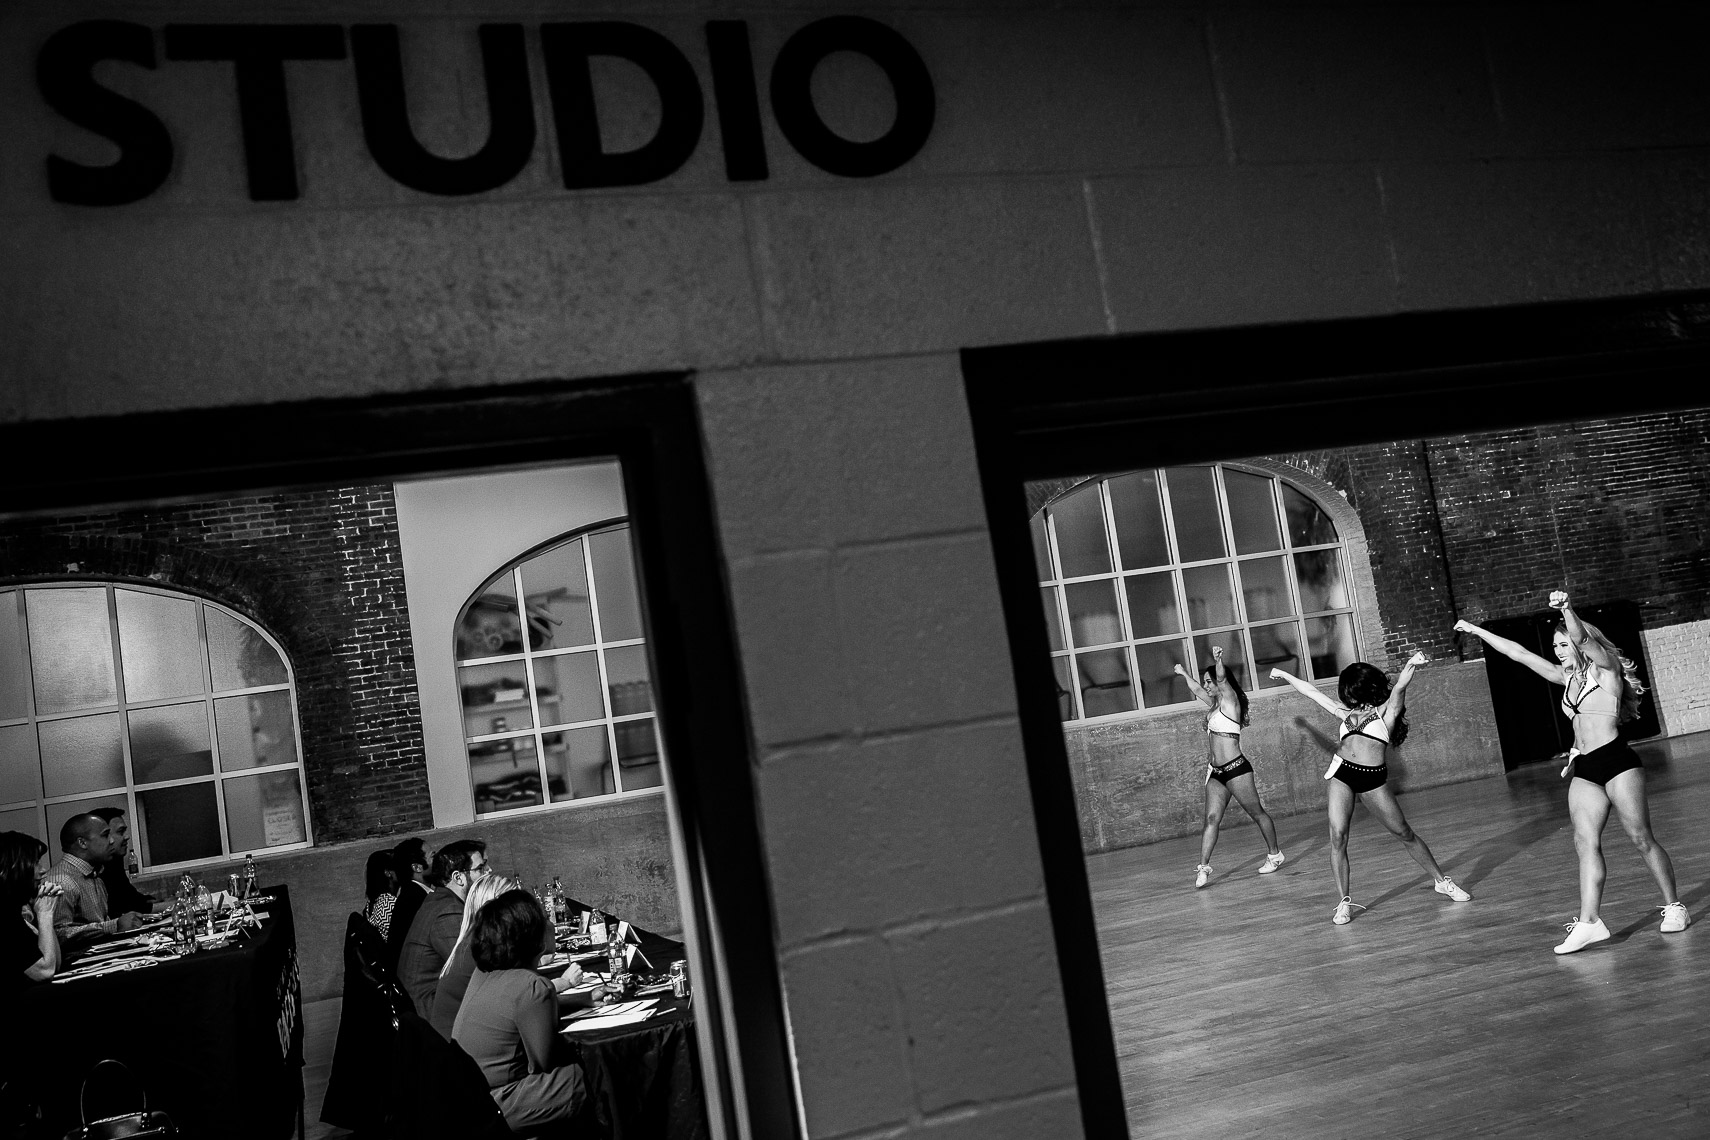 makingthecut14_ NFL cheerleaders cheerleading is a sport Baltimore Ravens cheerleading tryouts documentary photographer in Baltimore sports photojournalism documentary photos professional cheerleaders athletes cheerleading photos